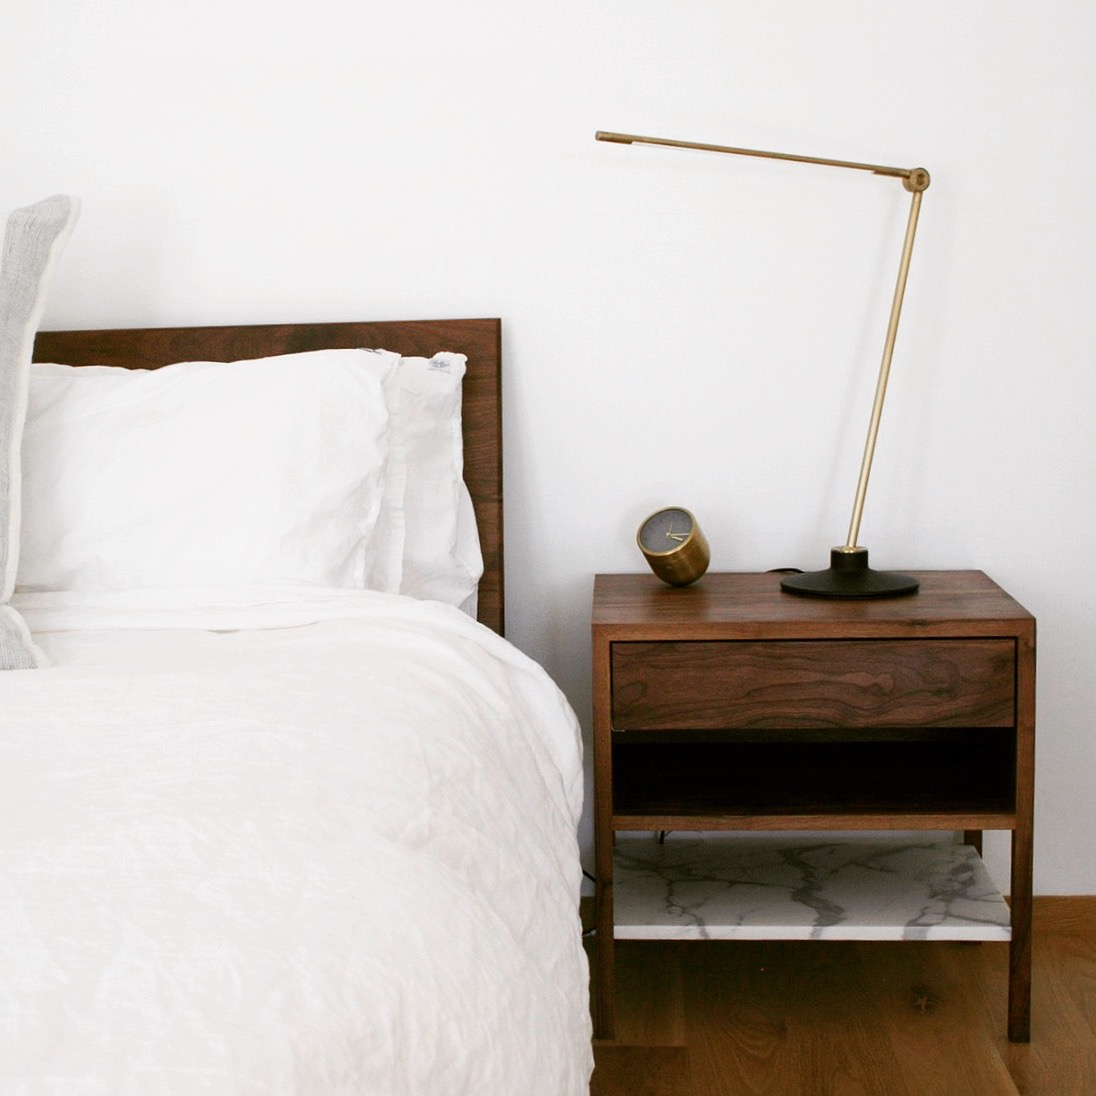 The Bailey Bedside Tables